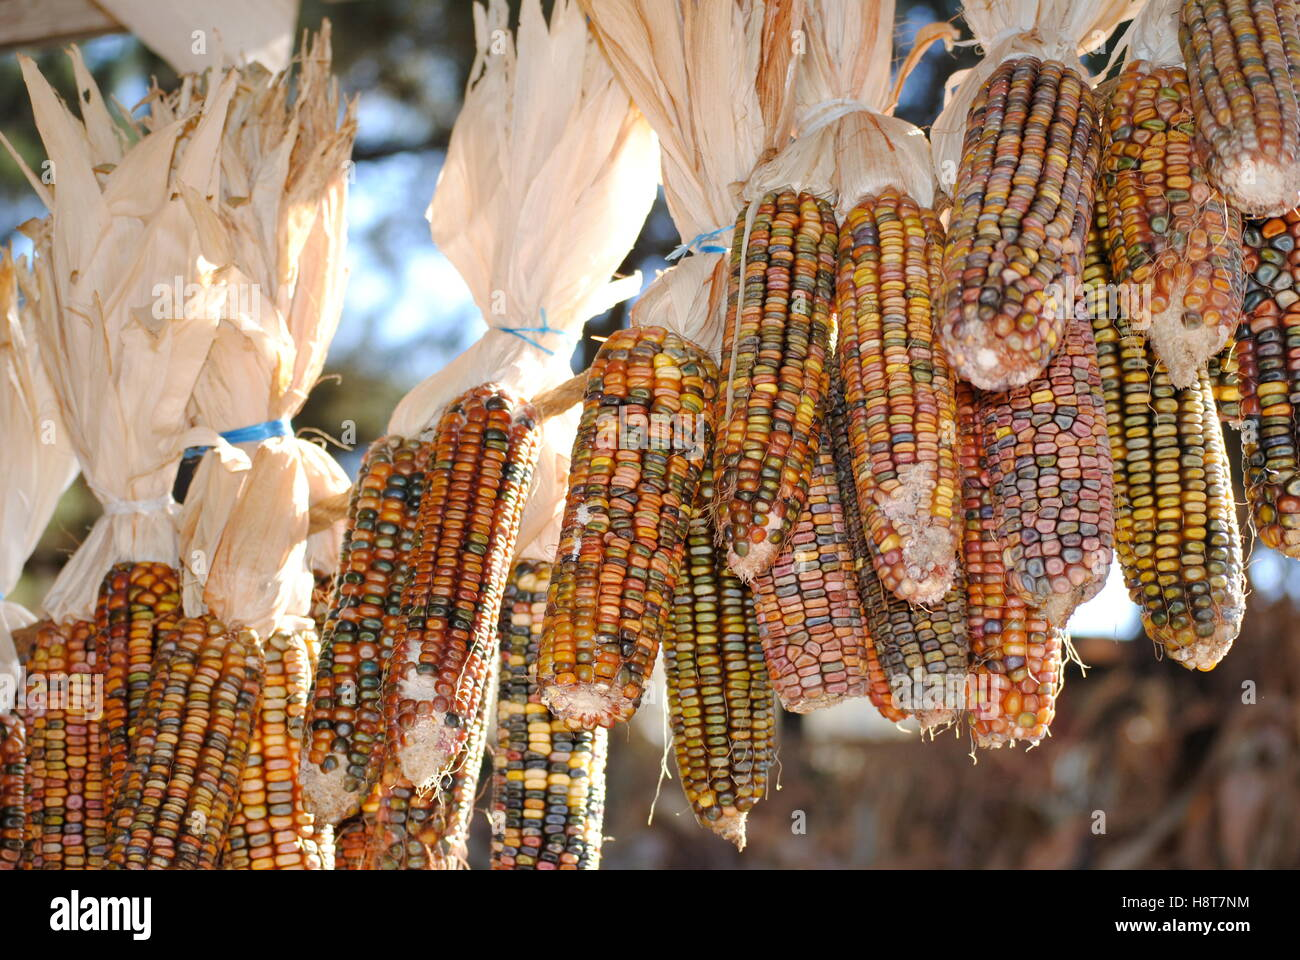 Multi-Colored Corn on the Cob Hanging from a Rope. - Stock Image